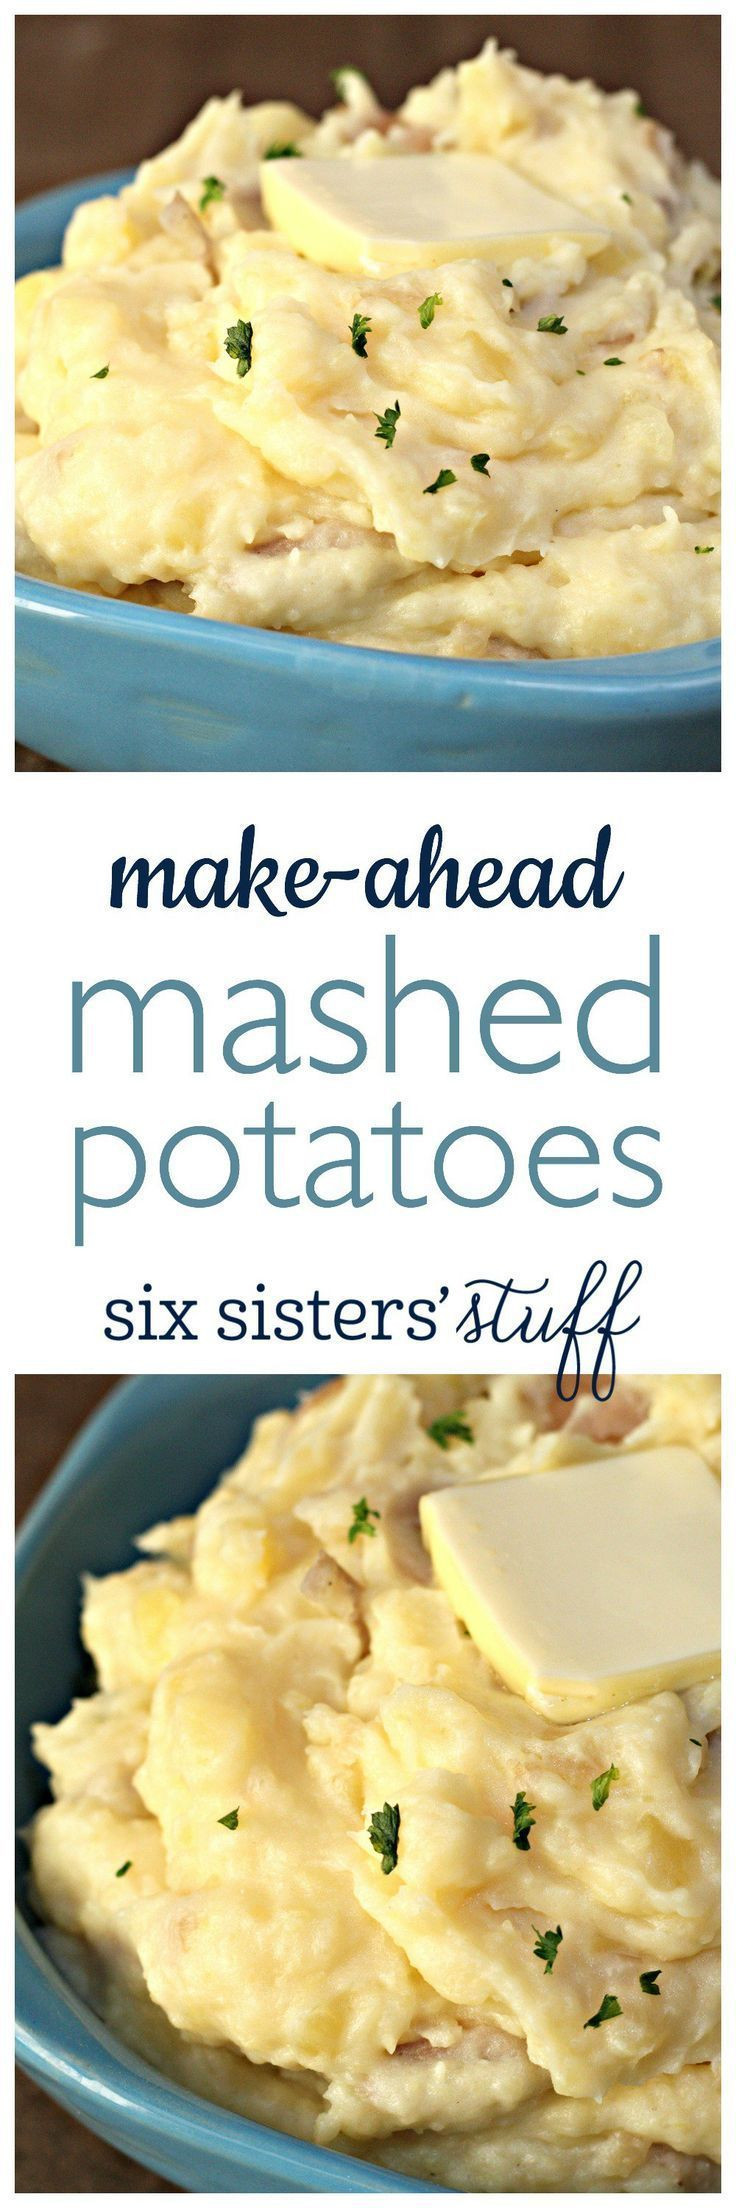 Make Ahead Easter Side Dishes  Best 25 Make ahead appetizers ideas on Pinterest